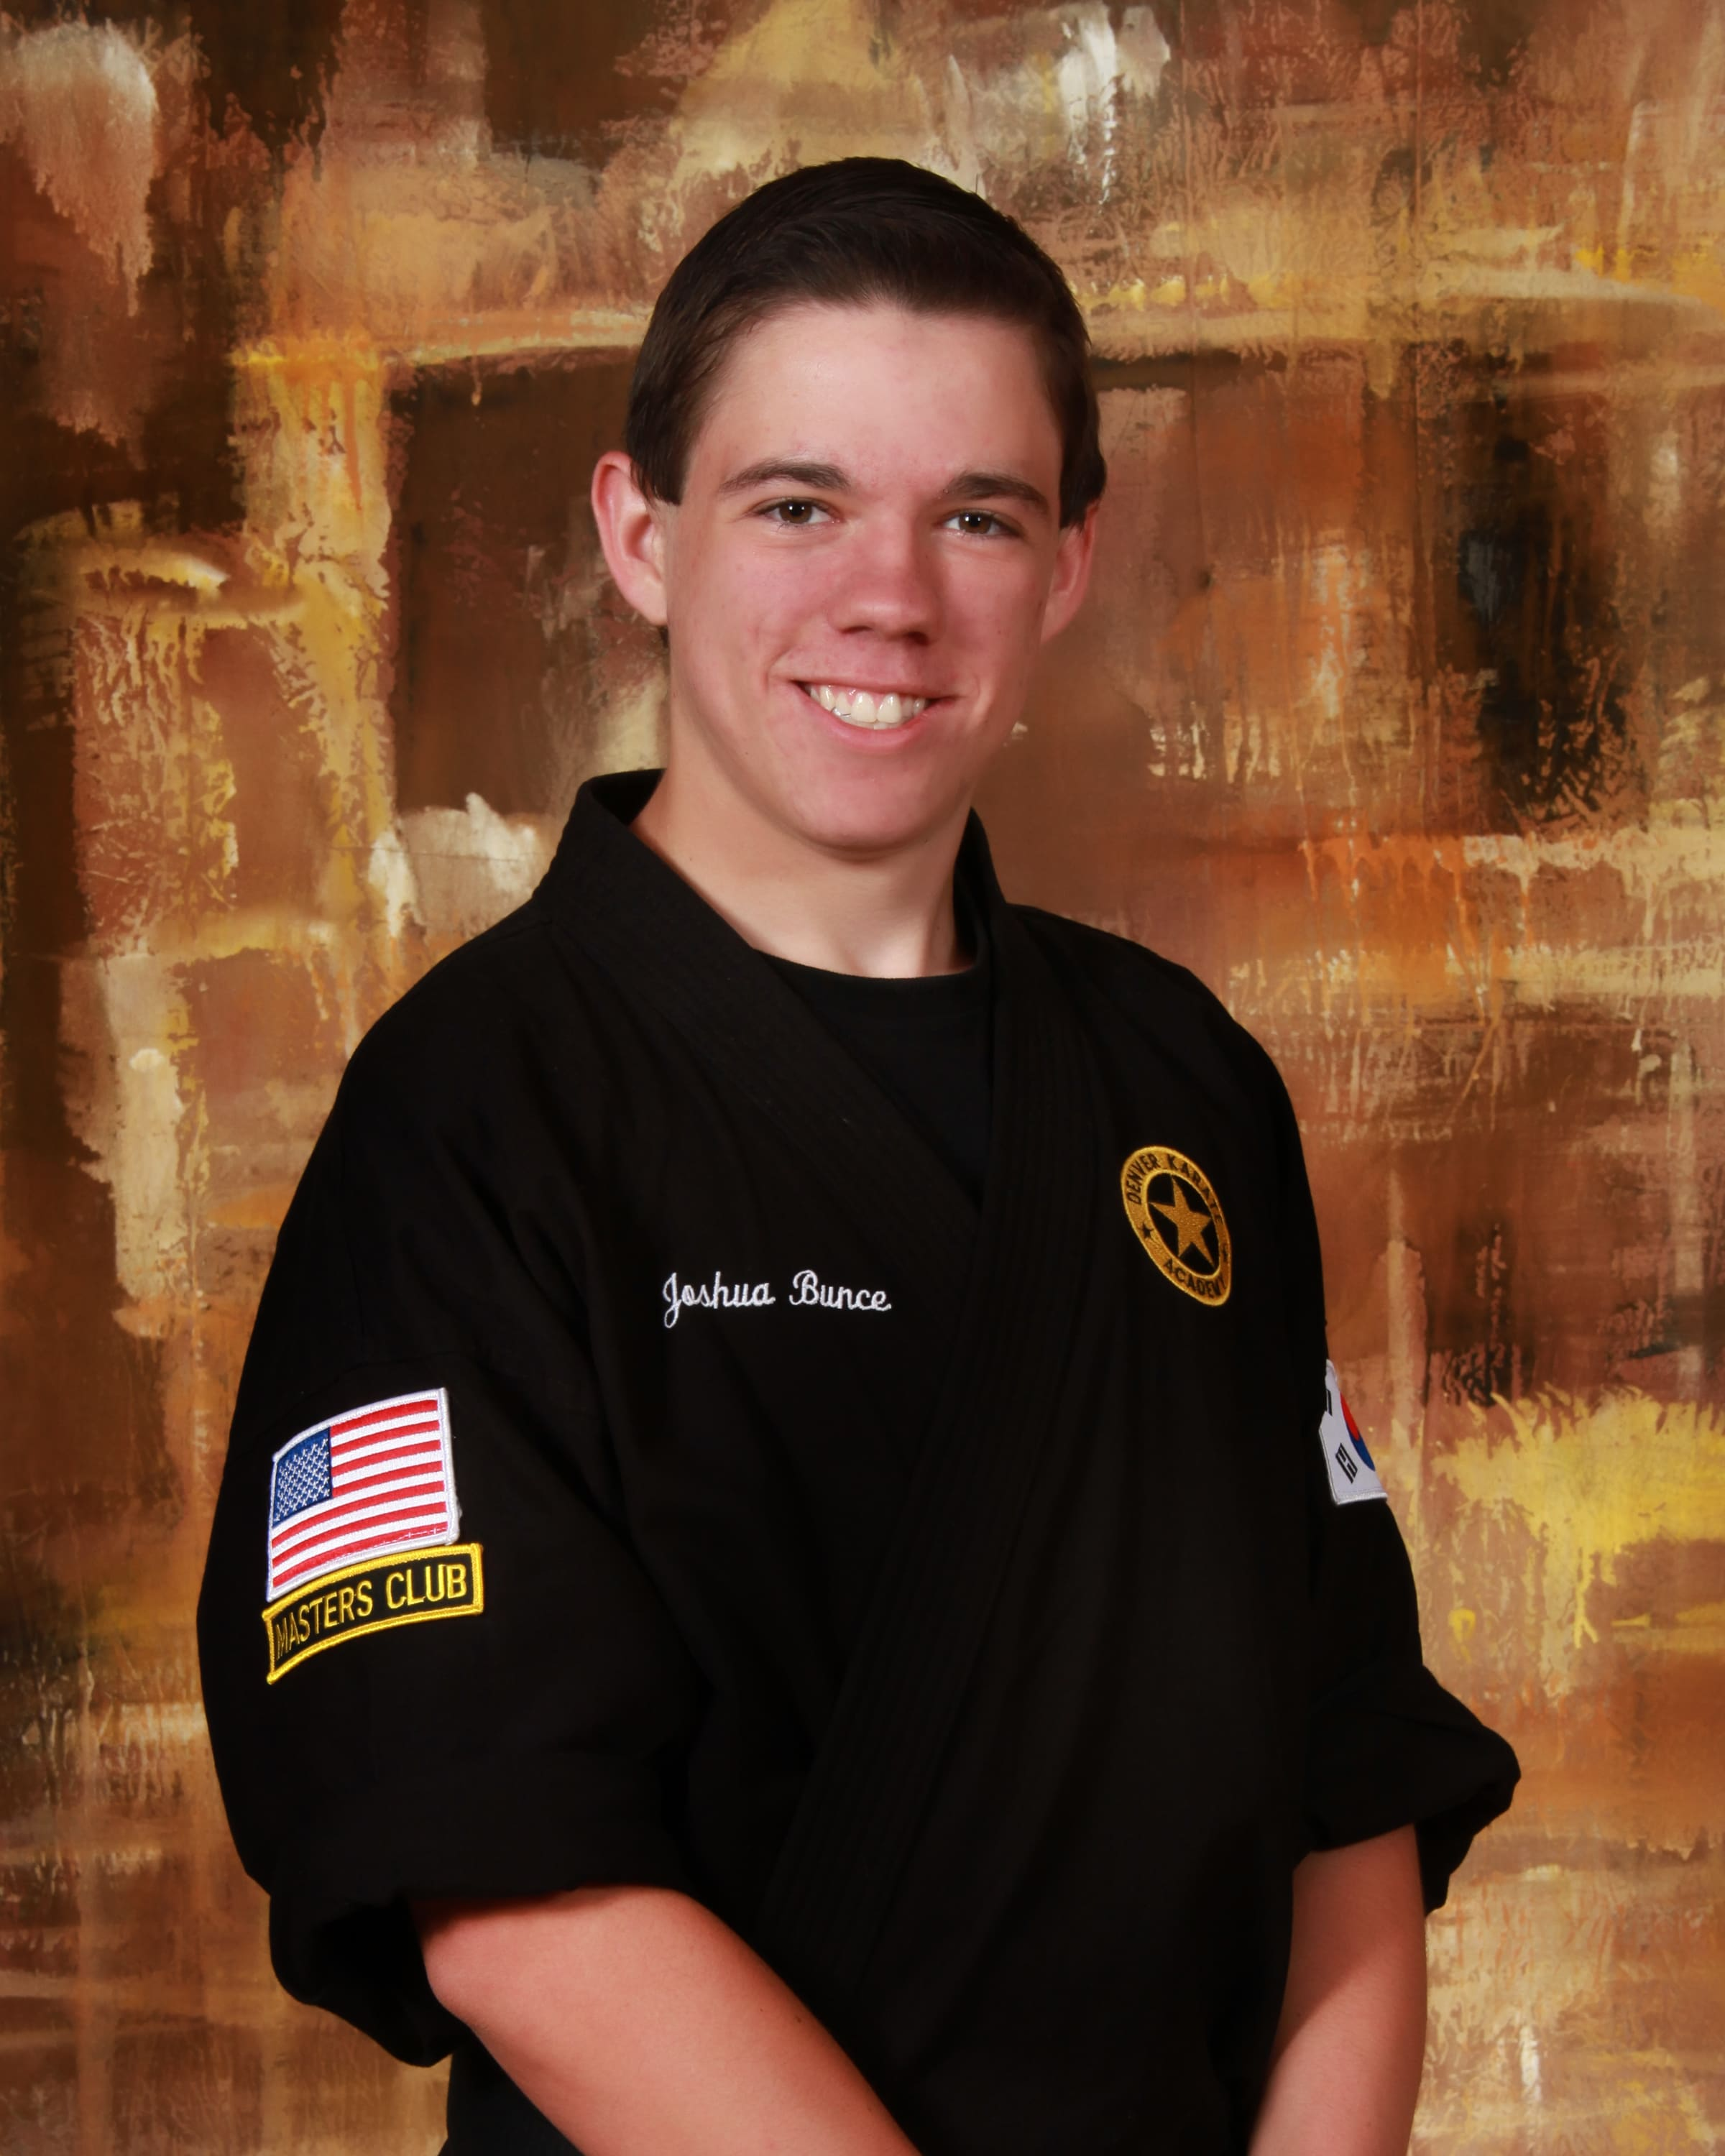 Joshua Bunce in Lakewood - Denver Karate Academy